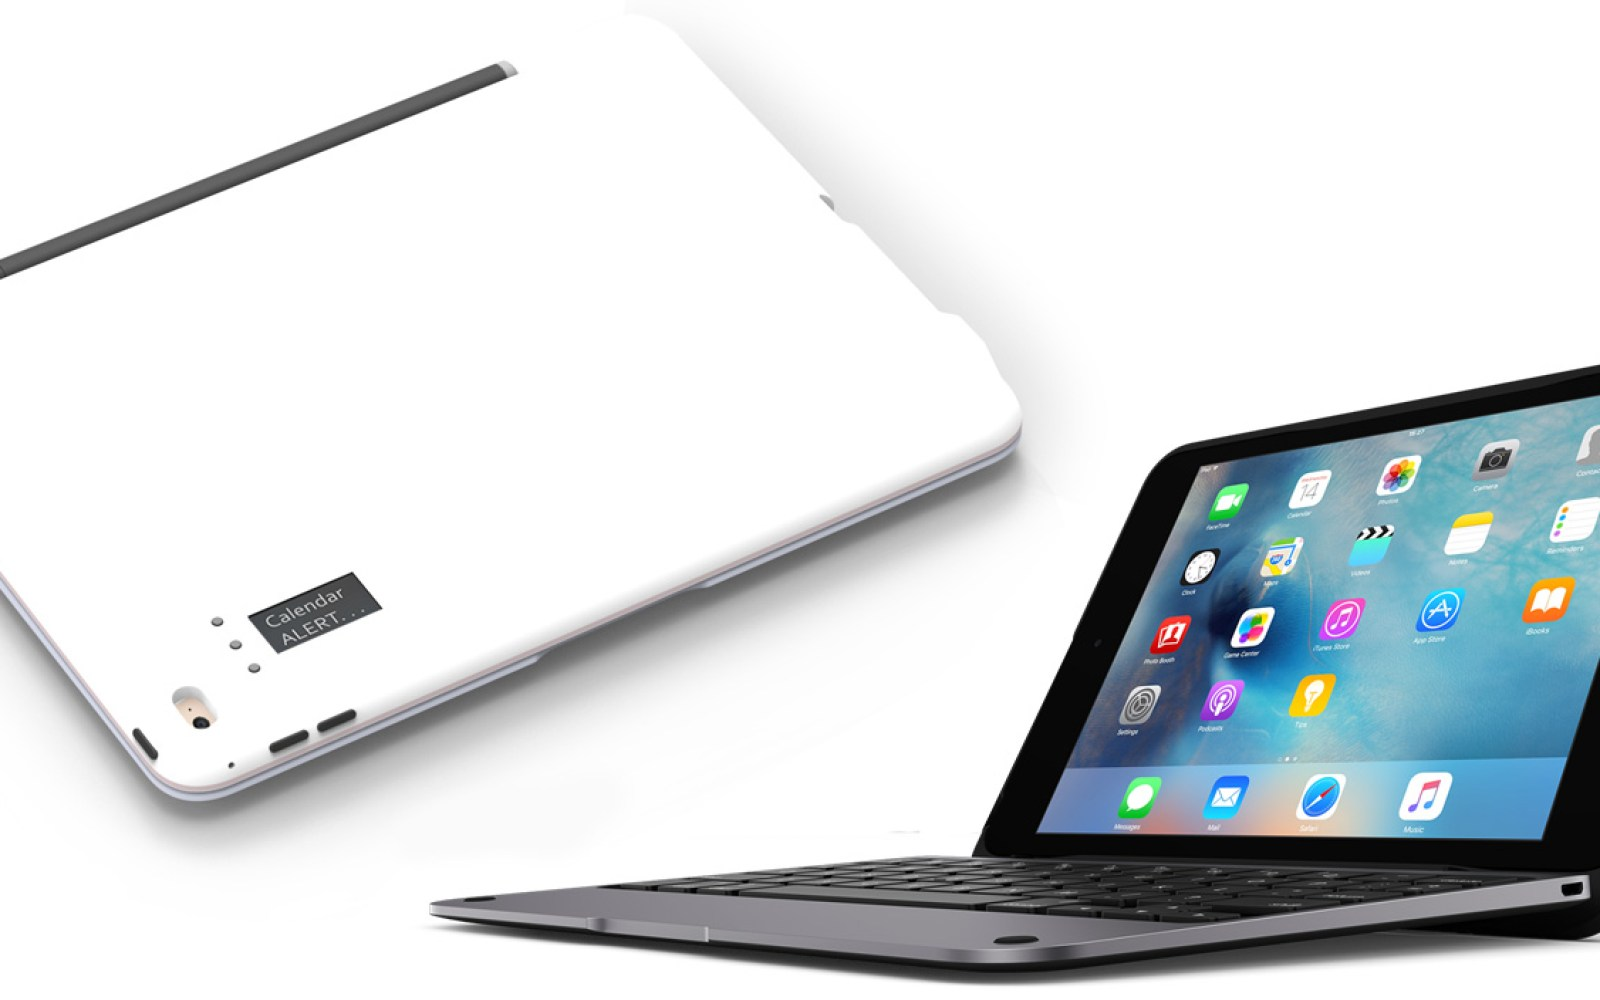 Incipio debuts ClamCase keyboards for iPad Pro, mini 4 + Air 2, adds power, notifications